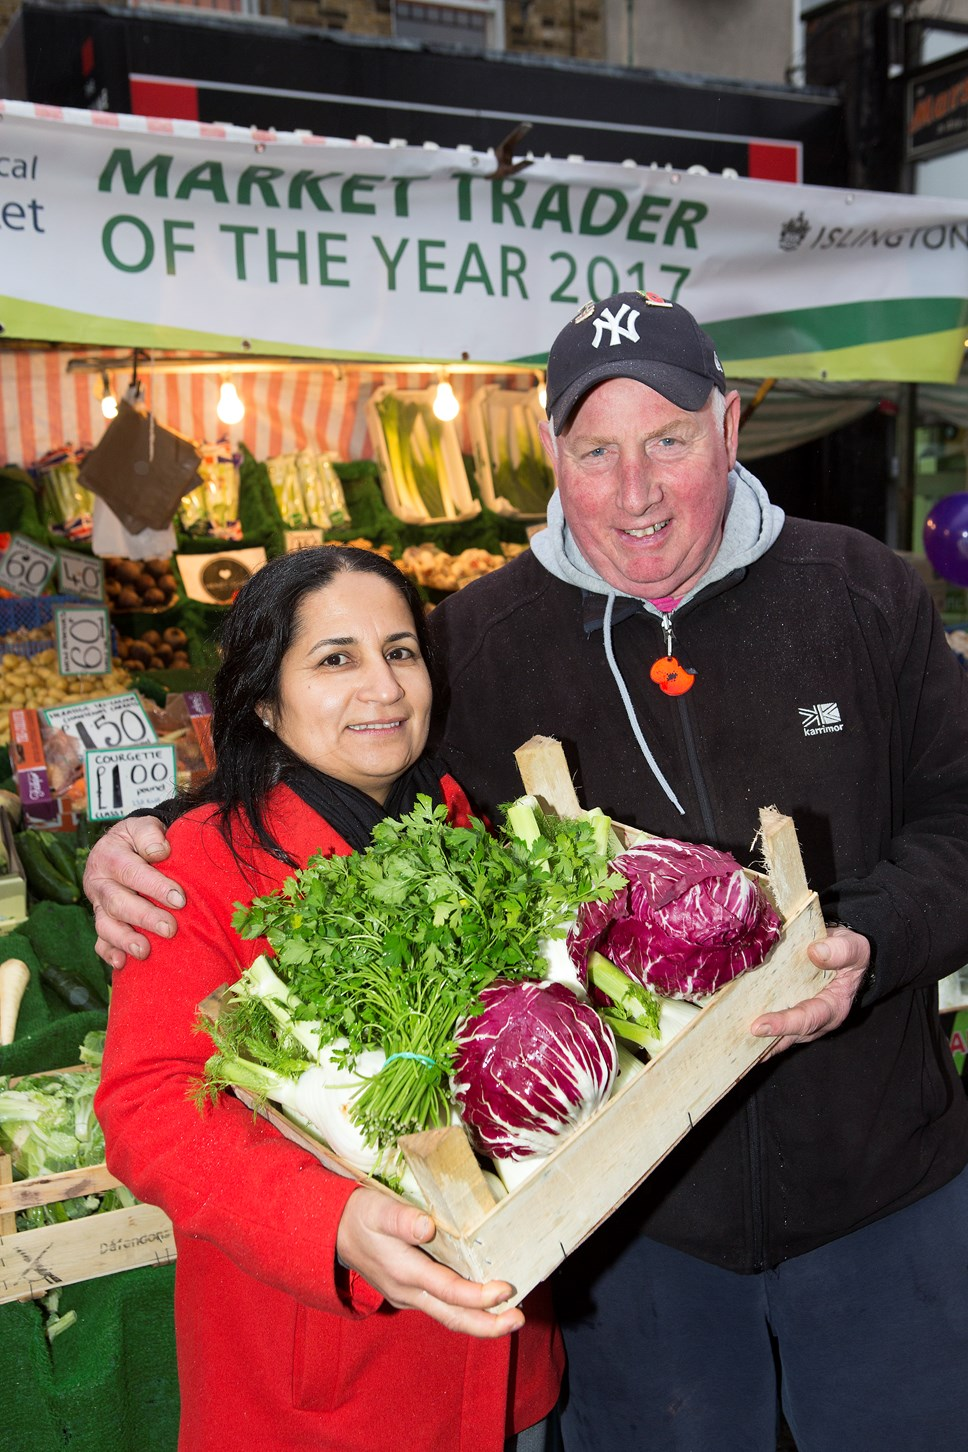 Vote for your Islington Market Trader of the Year 2018!: Serpil Erce and Dave Jackson, winners of Market Trader of the Year 2017